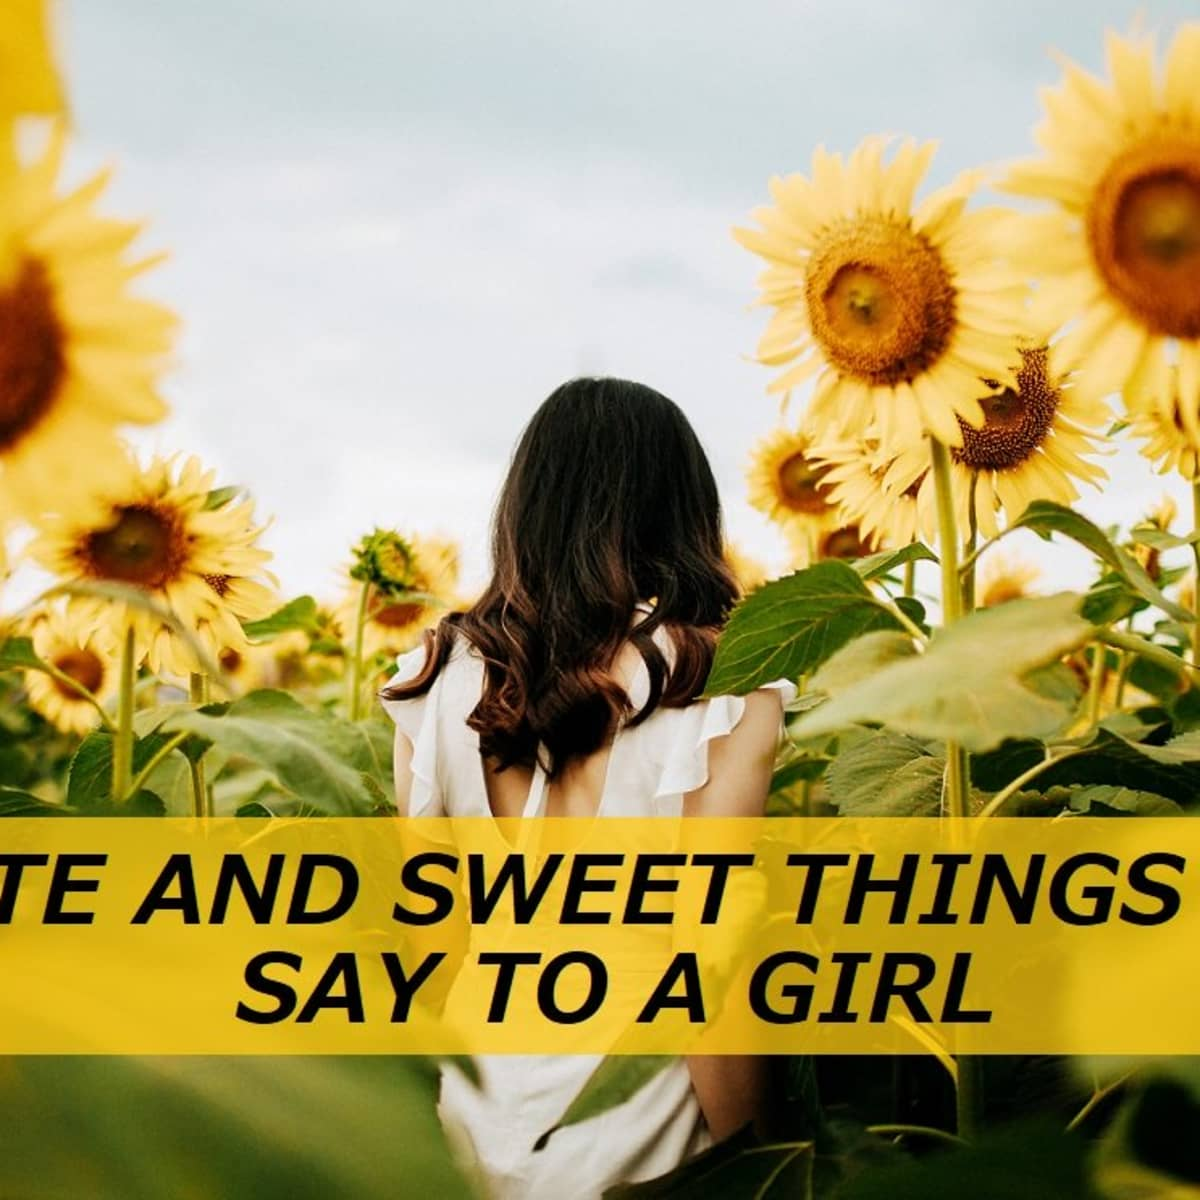 Top 10 sweet things to tell a girl